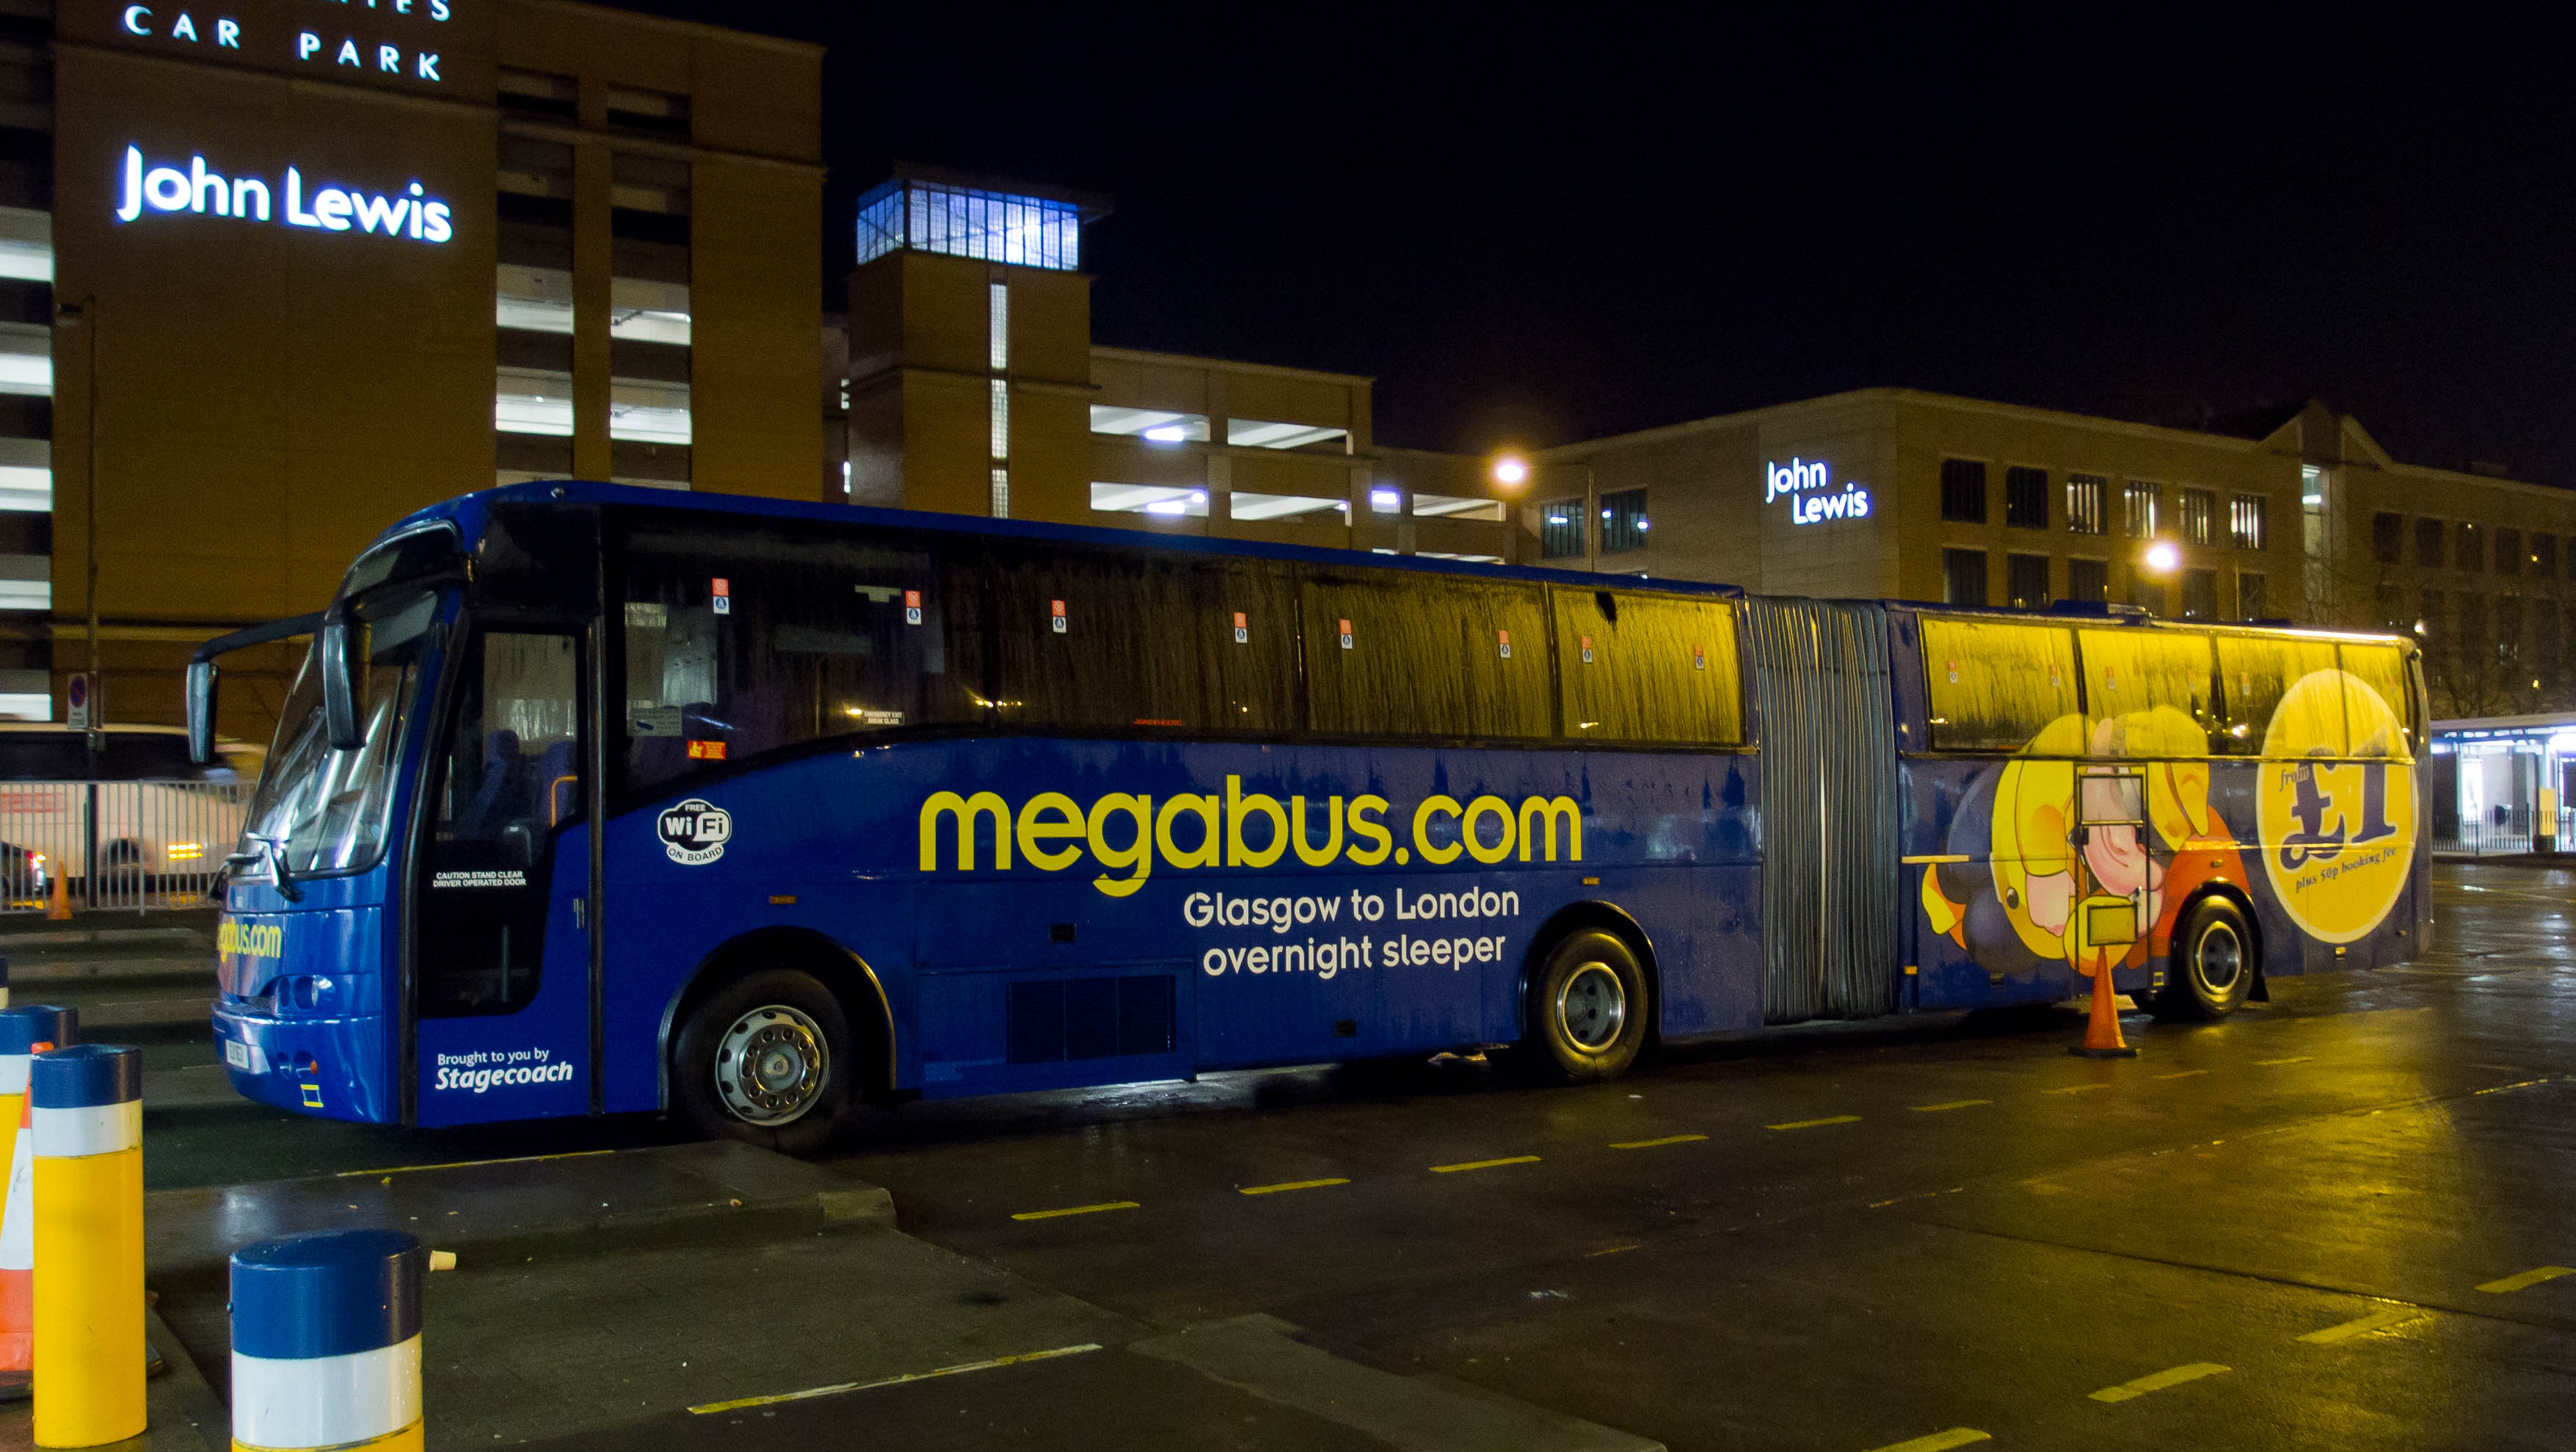 file megabus sleeper coach 51062 at buchanan bus station wikimedia commons. Black Bedroom Furniture Sets. Home Design Ideas